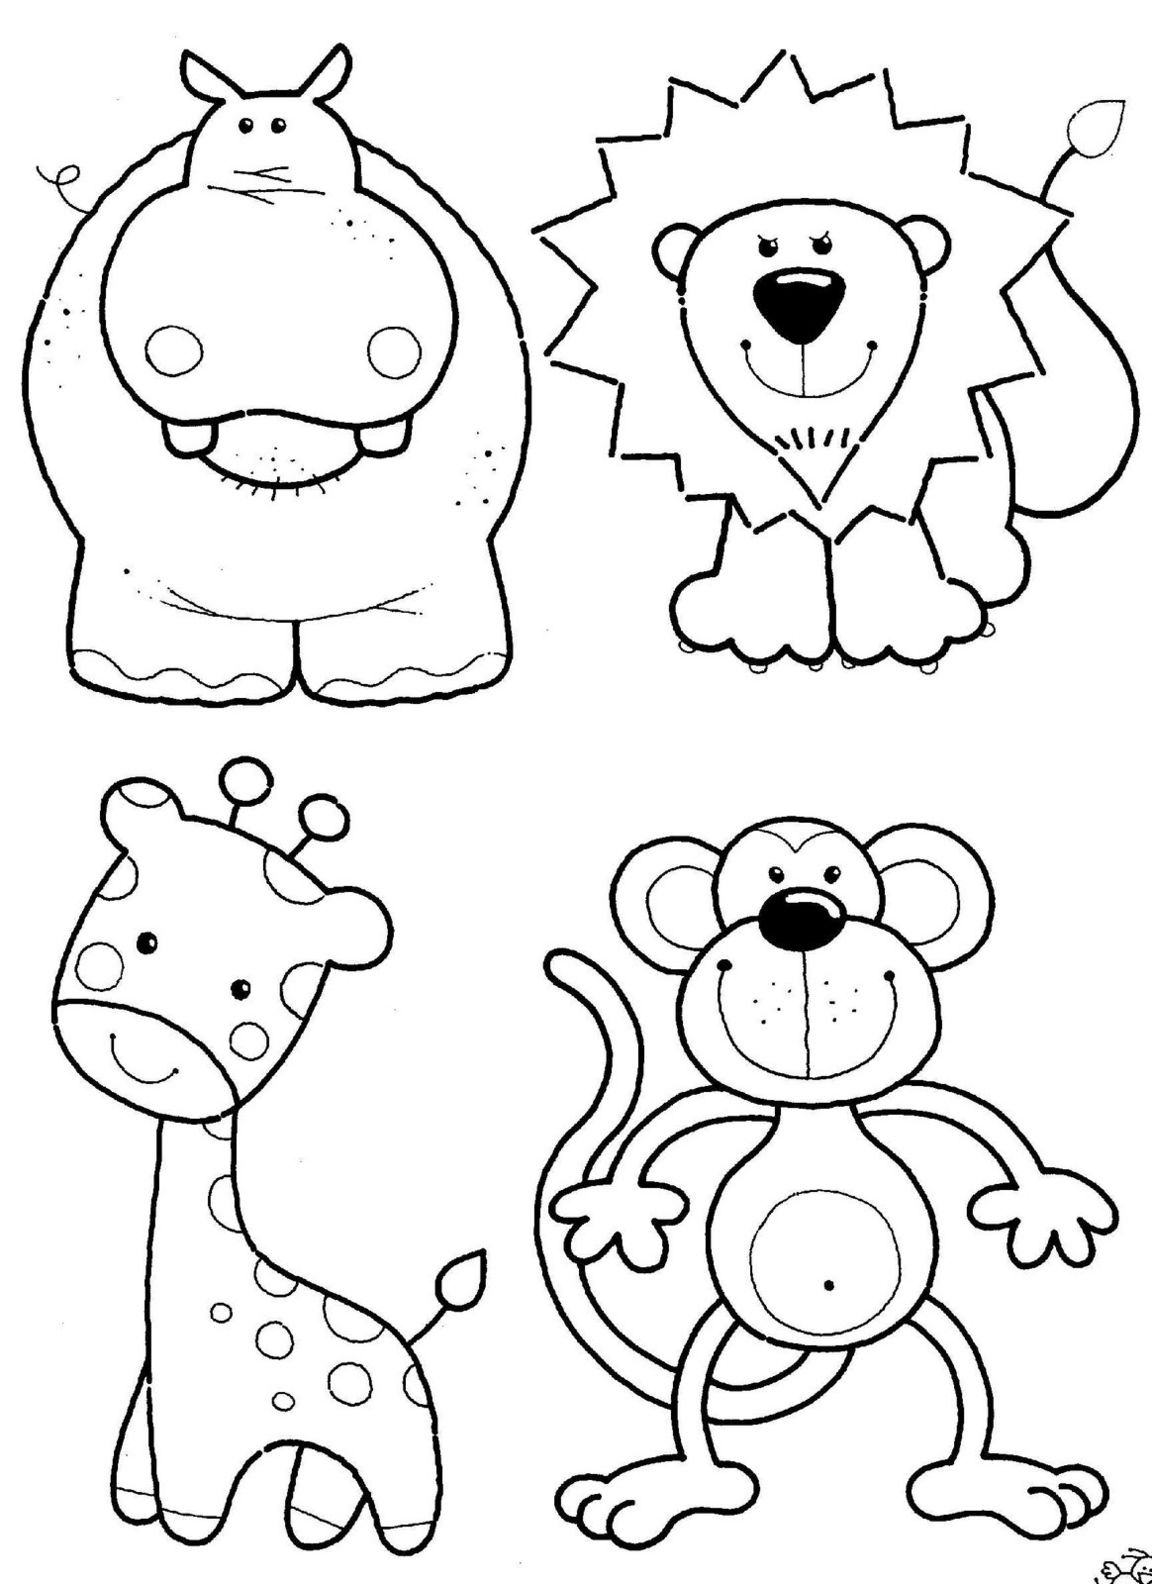 coloring pages to print animals coloring pages to print animals coloring pages to print 2. Black Bedroom Furniture Sets. Home Design Ideas